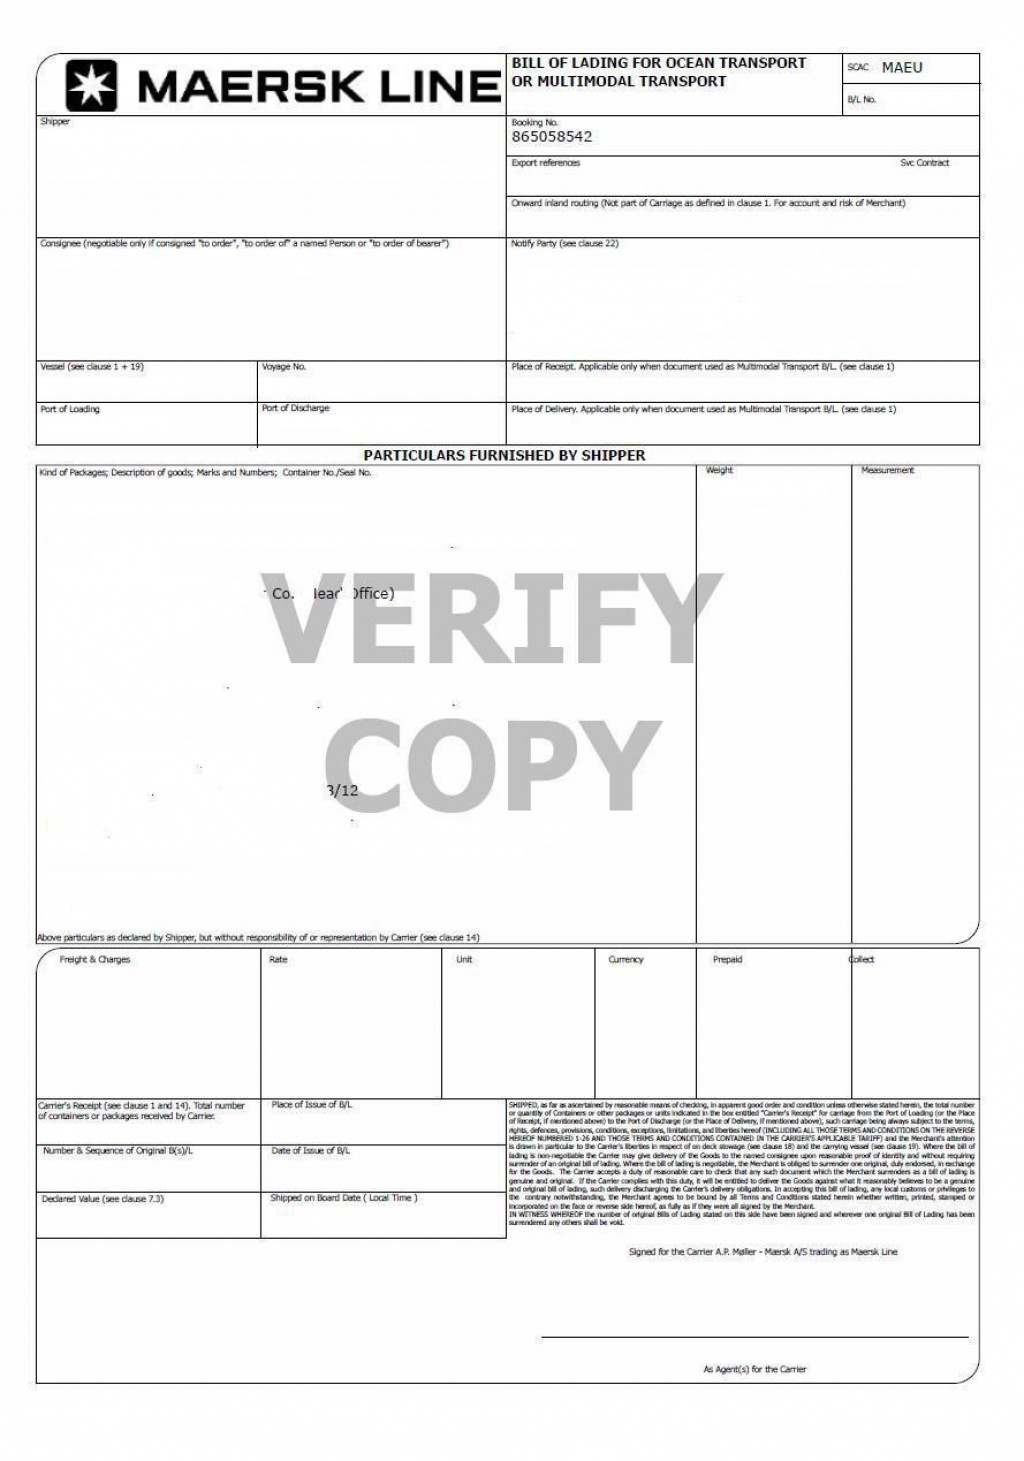 000 Formidable Bill Of Lading Template Word Doc High Resolution  Document FormLarge